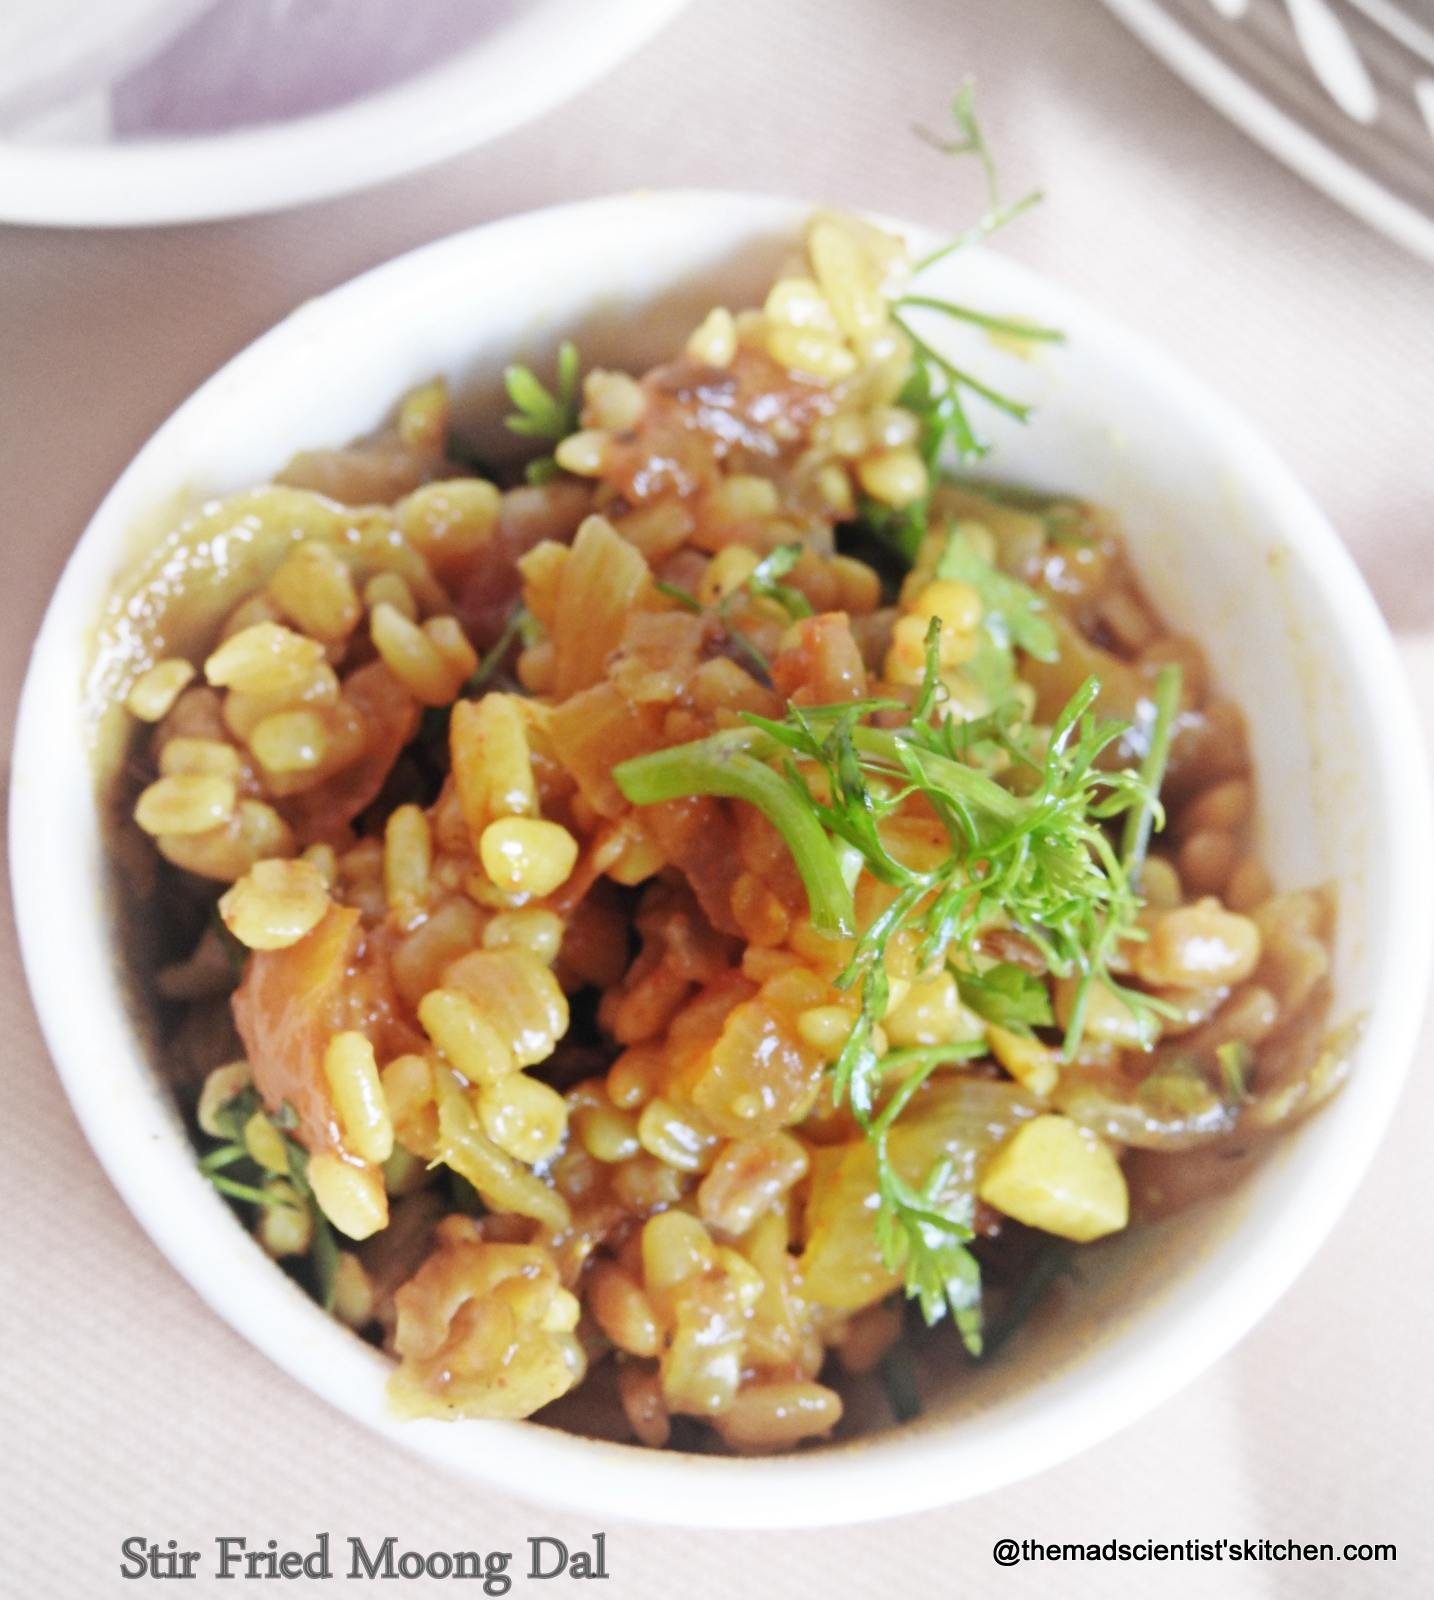 Stir fried Moong Dal,Sukhi Mung Dal,Stir fried Moong Dal, Stir fried Green Gram Lentil